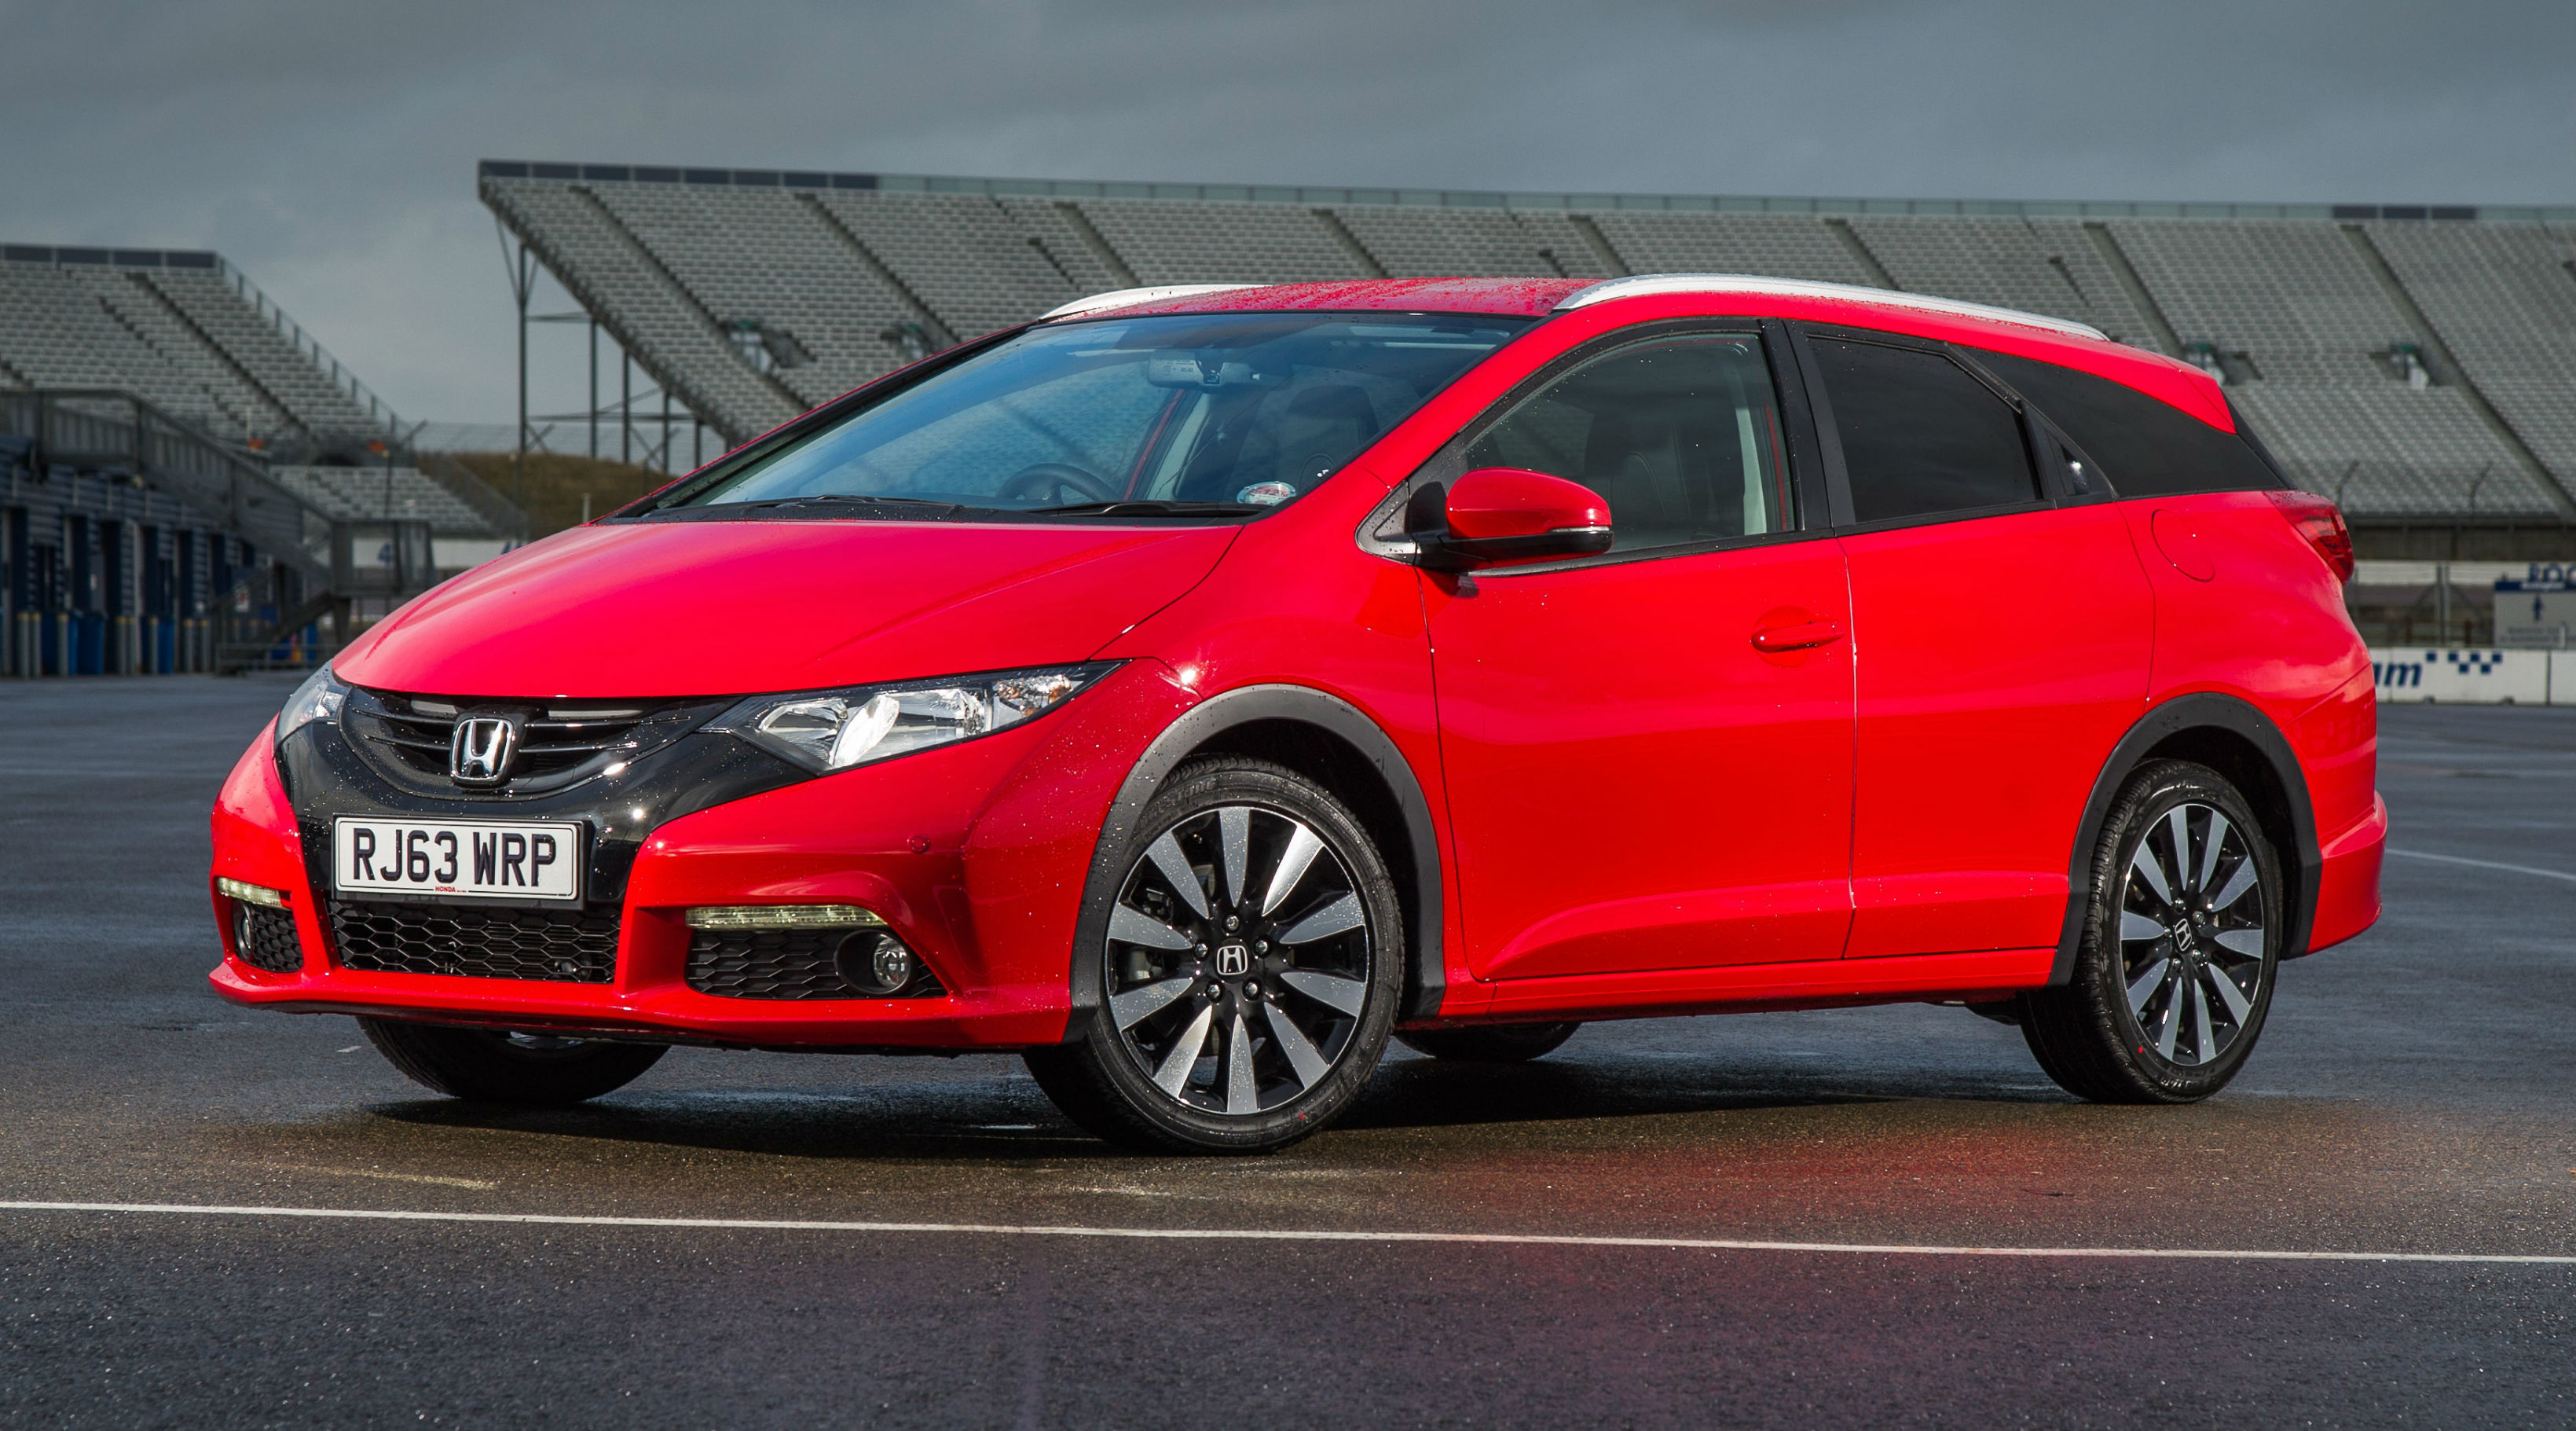 Honda Civic Tourer 1.6 i-DTEC